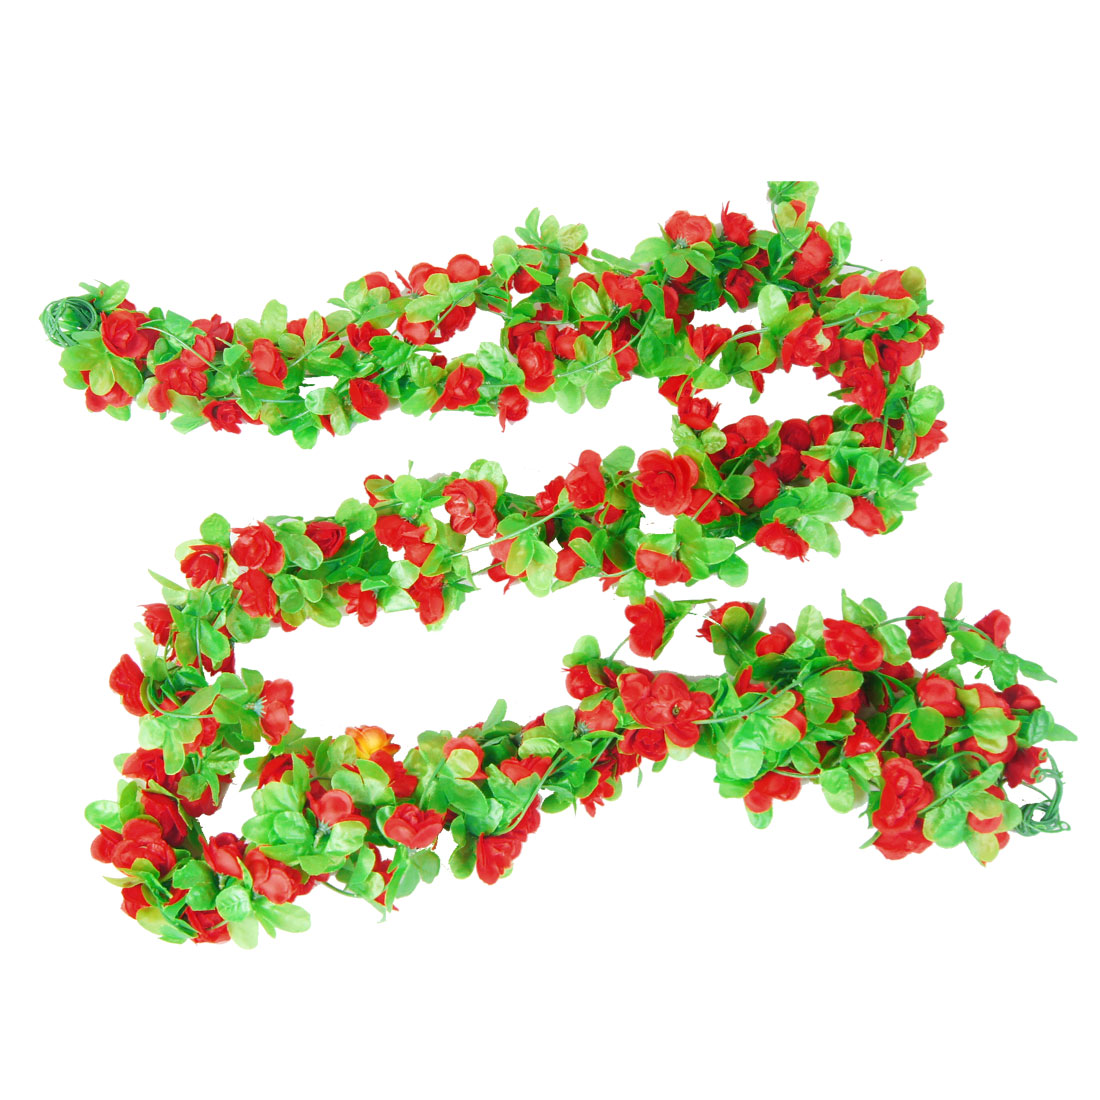 2.2M Long Emulational Ornament Green Leaf Fabric Flower Ivy Red 5 Pcs